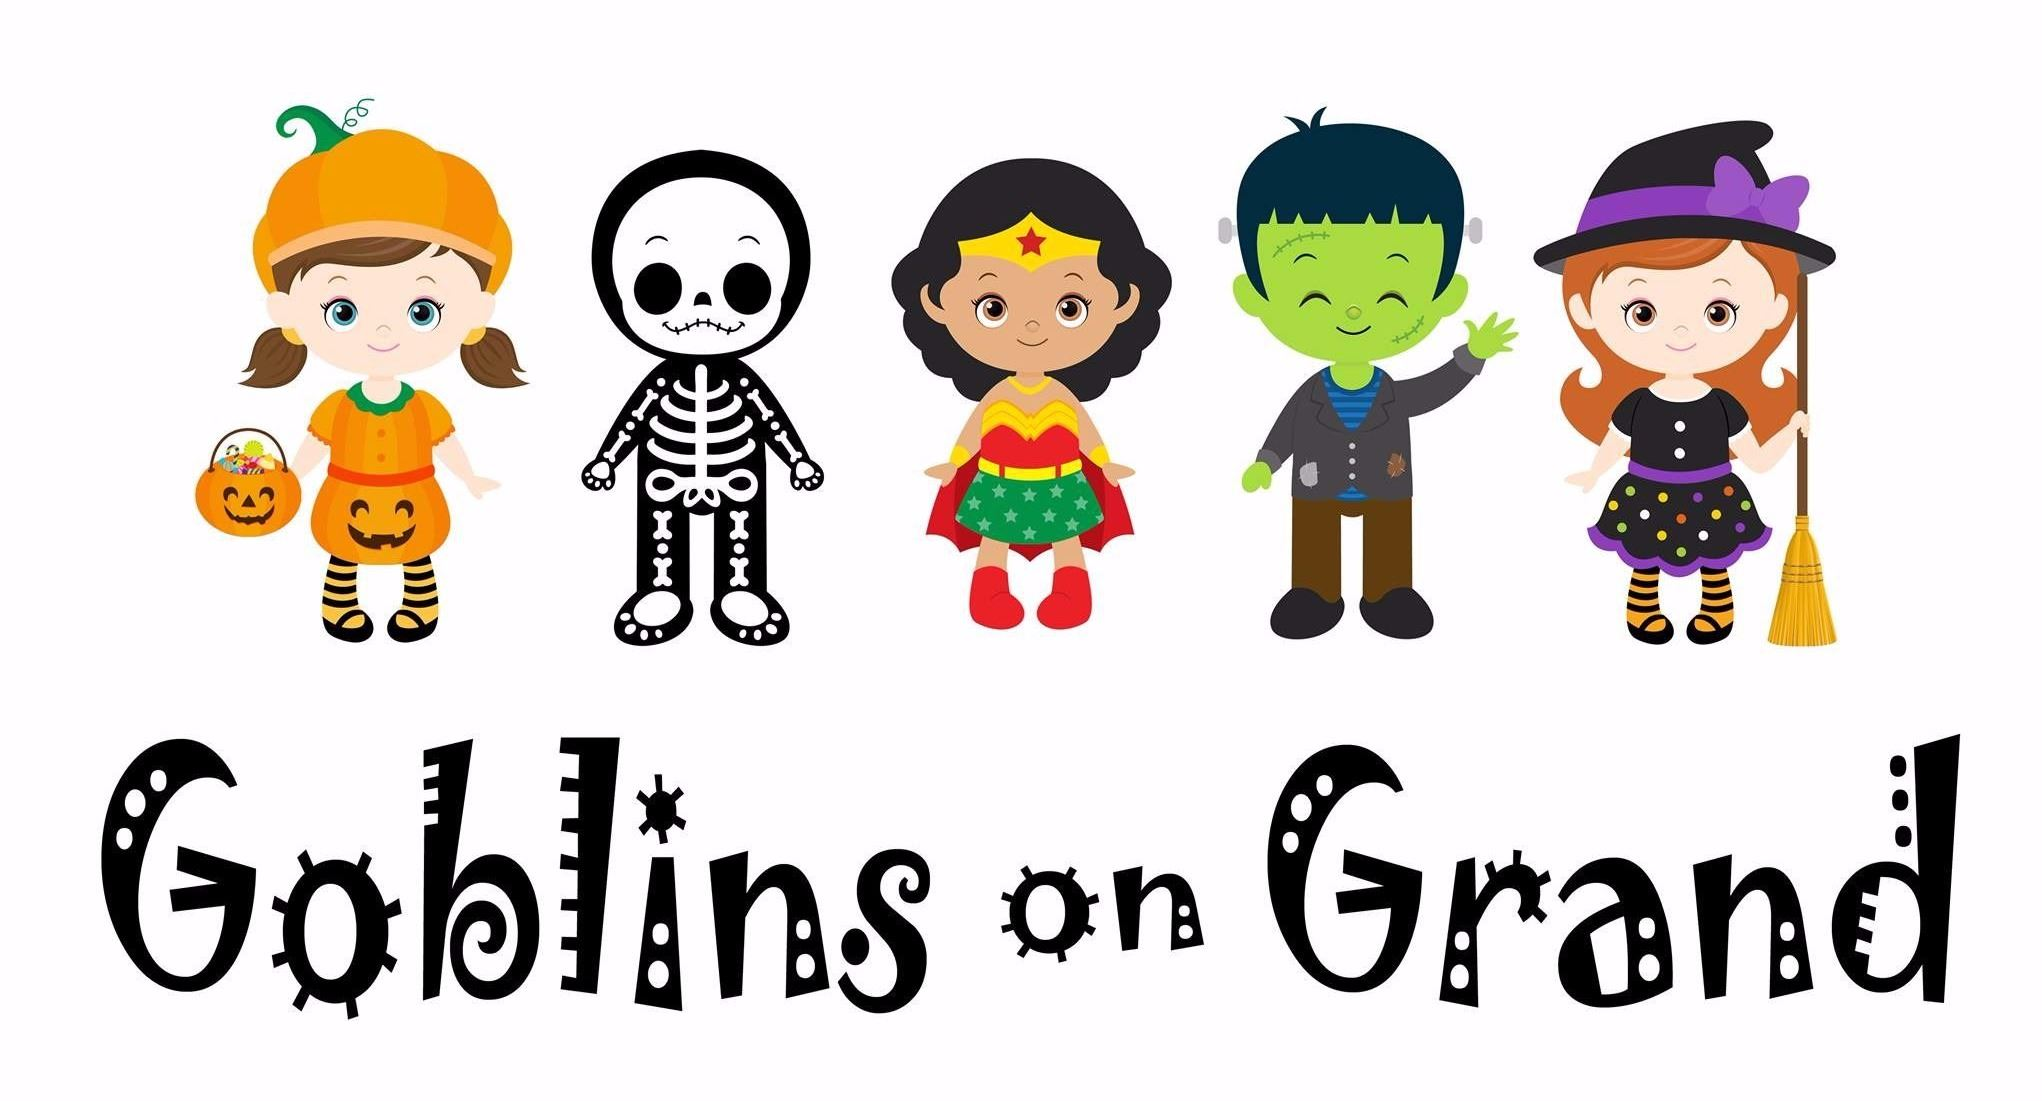 Goblins on grand